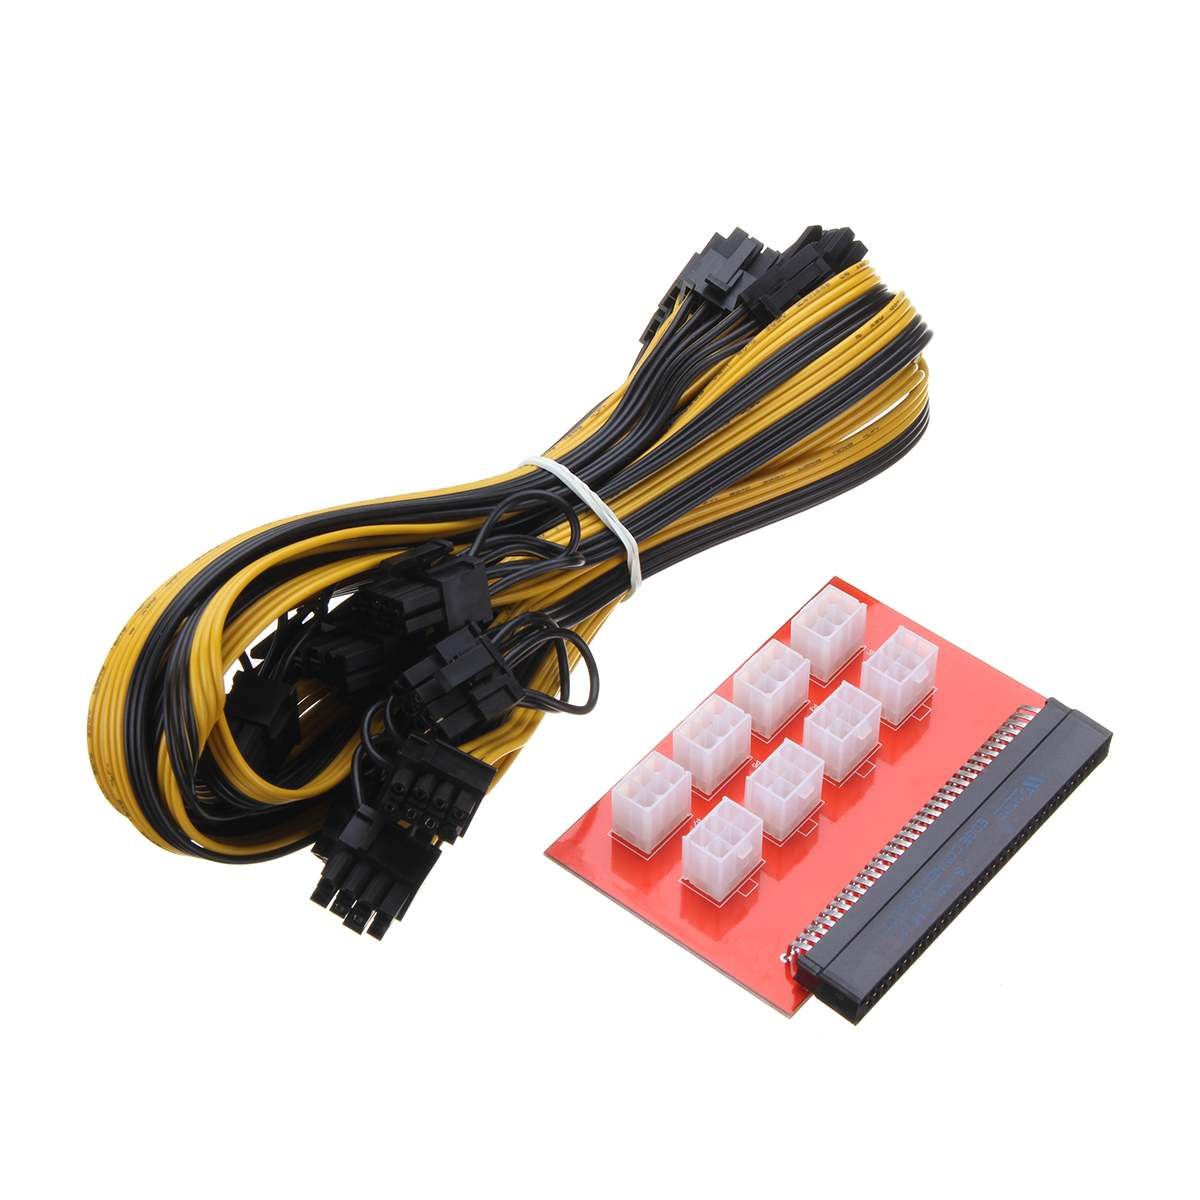 PSU/GPU Mining Power Supply Kit Adapter Breakout Board 1200w/750w + 8pcs 16AWG PCI E 6Pin to 6+2Pin Wire Cables 27.5inch